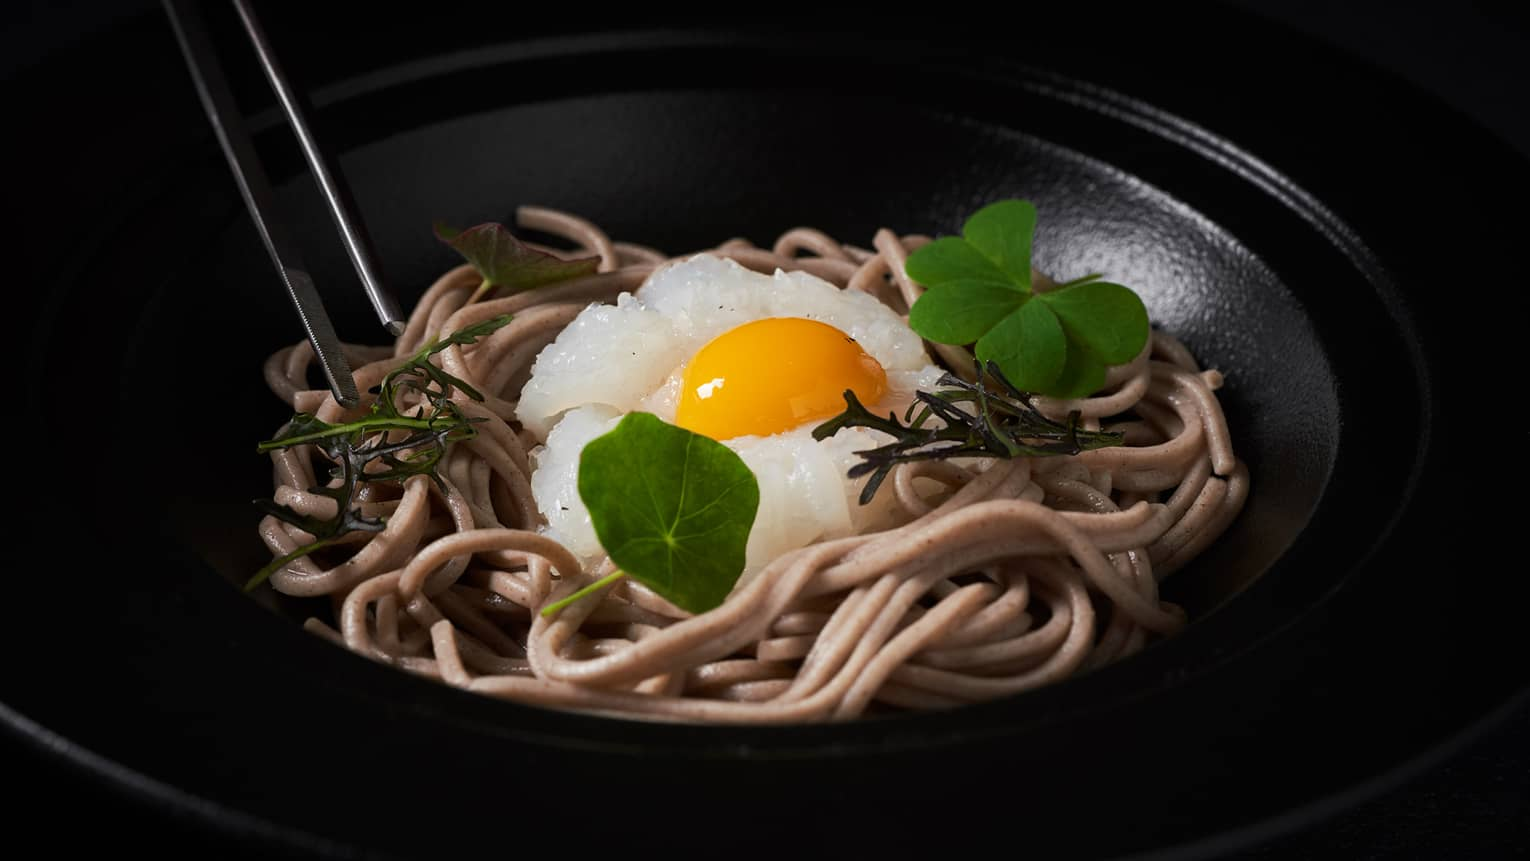 Buckwheat spaghetti with ika somen calamari, fish broth, quail egg yolk and summer truffle